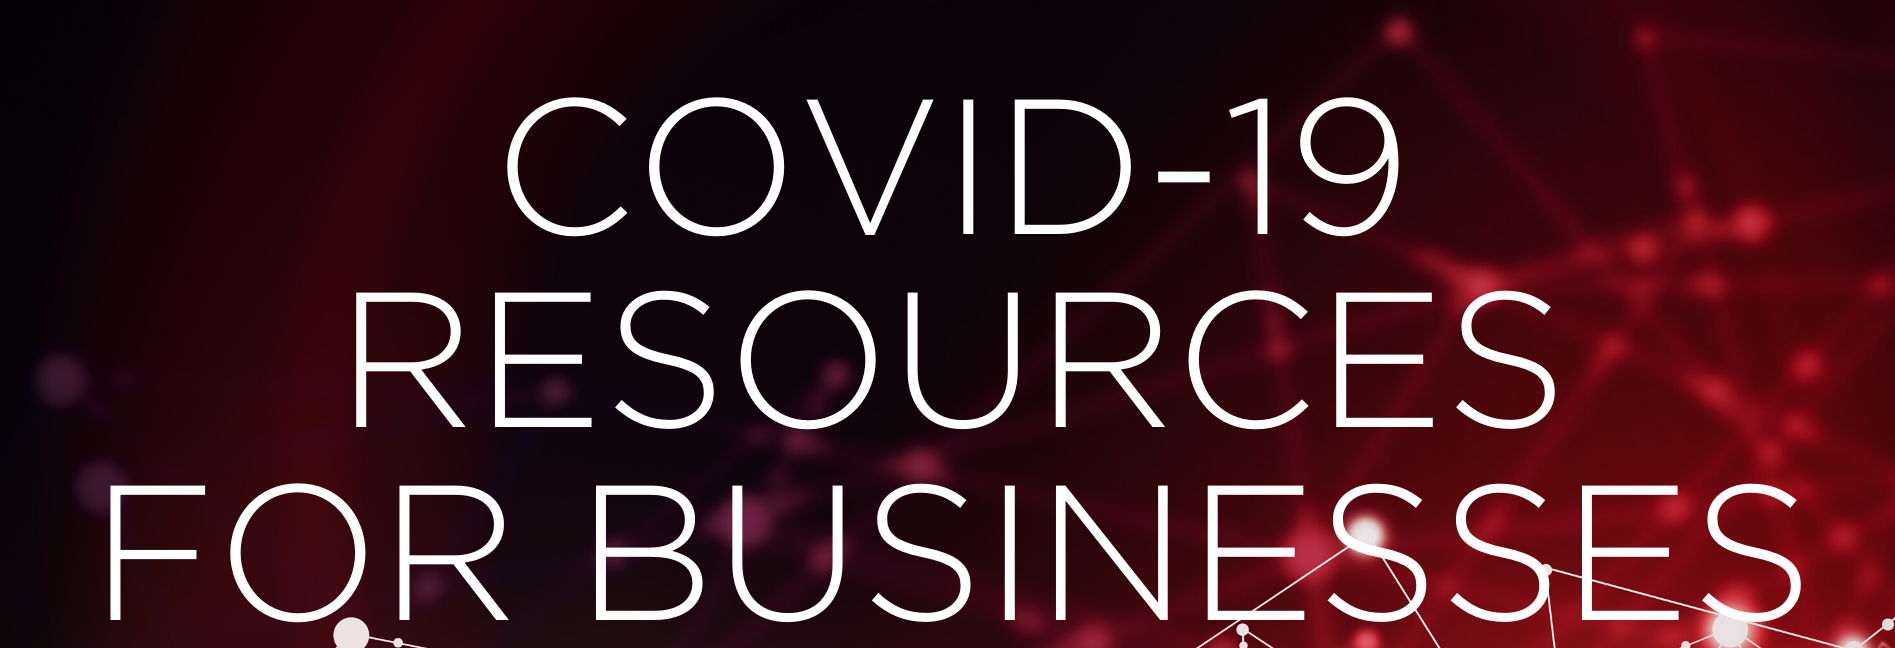 COVID 19 Resources for Businesses